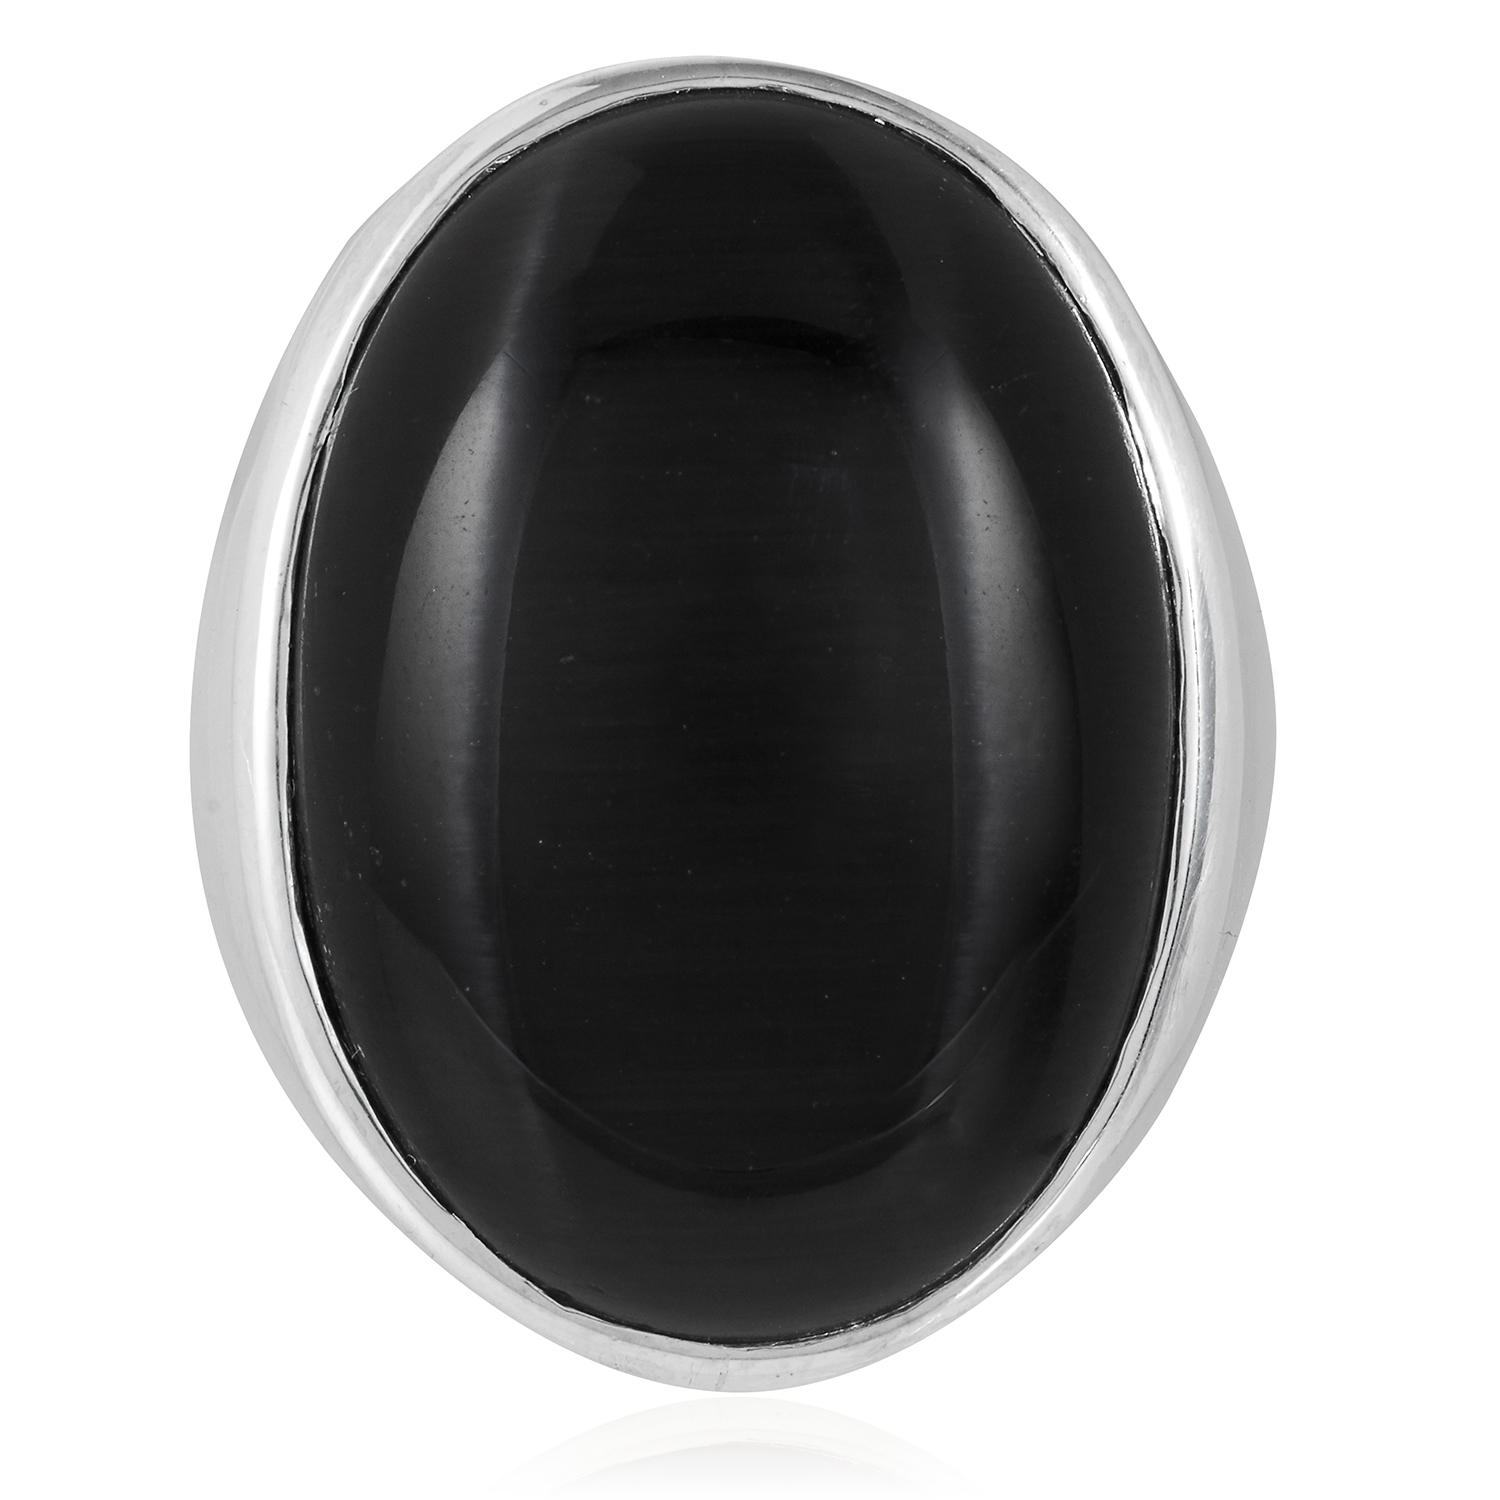 A CATS-EYE DRESS RING in sterling silver, set with a cabochon black cats-eye, size Q / 8, 19.0g.